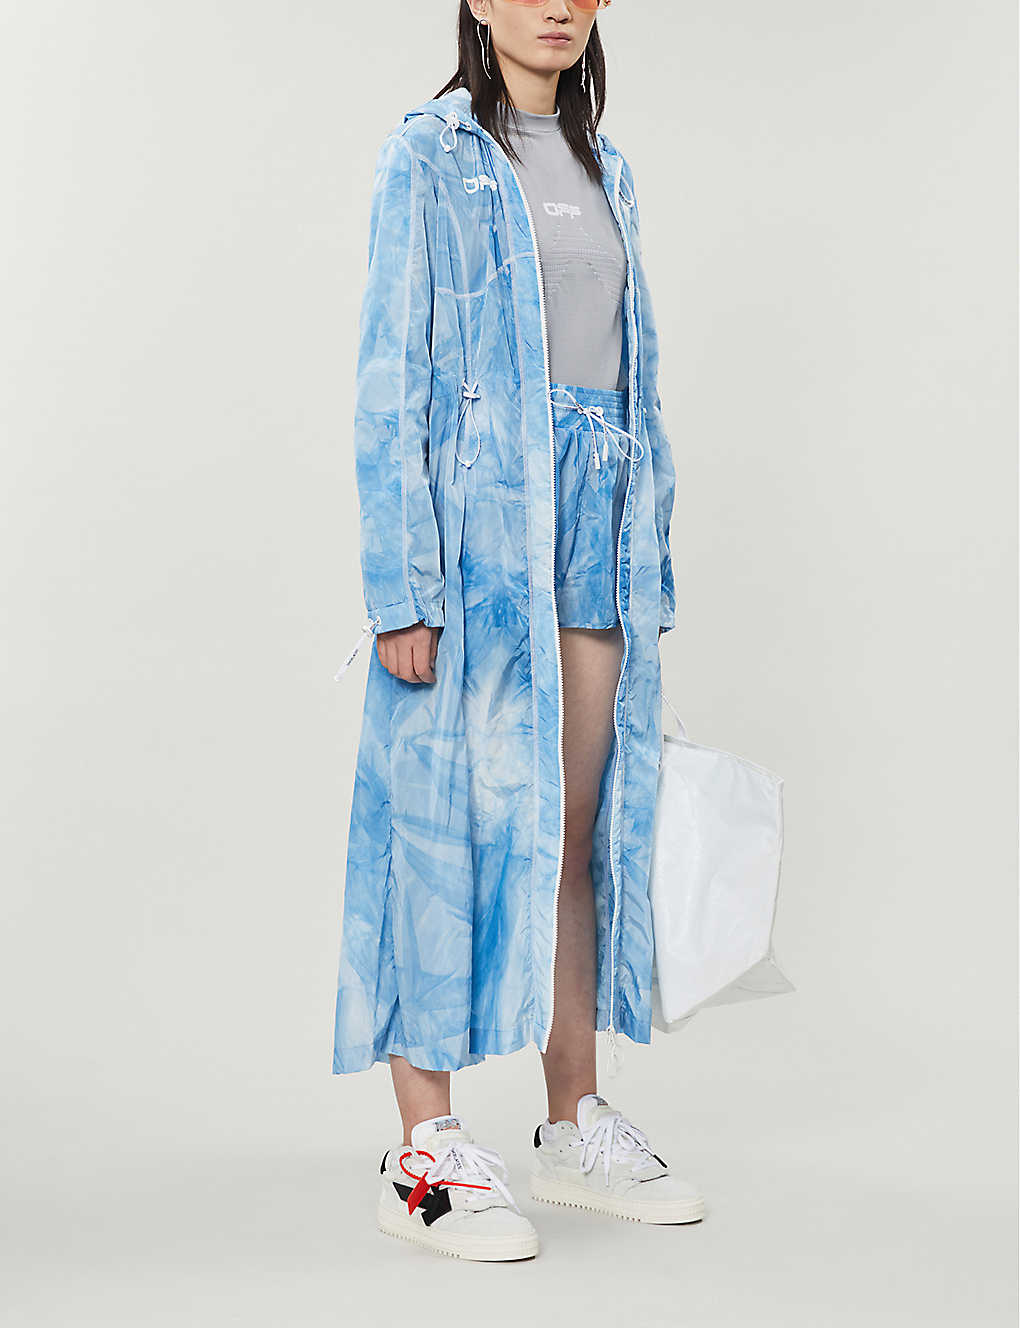 OFF-WHITE C/O VIRGIL ABLOH: Tie-dye print shell coat